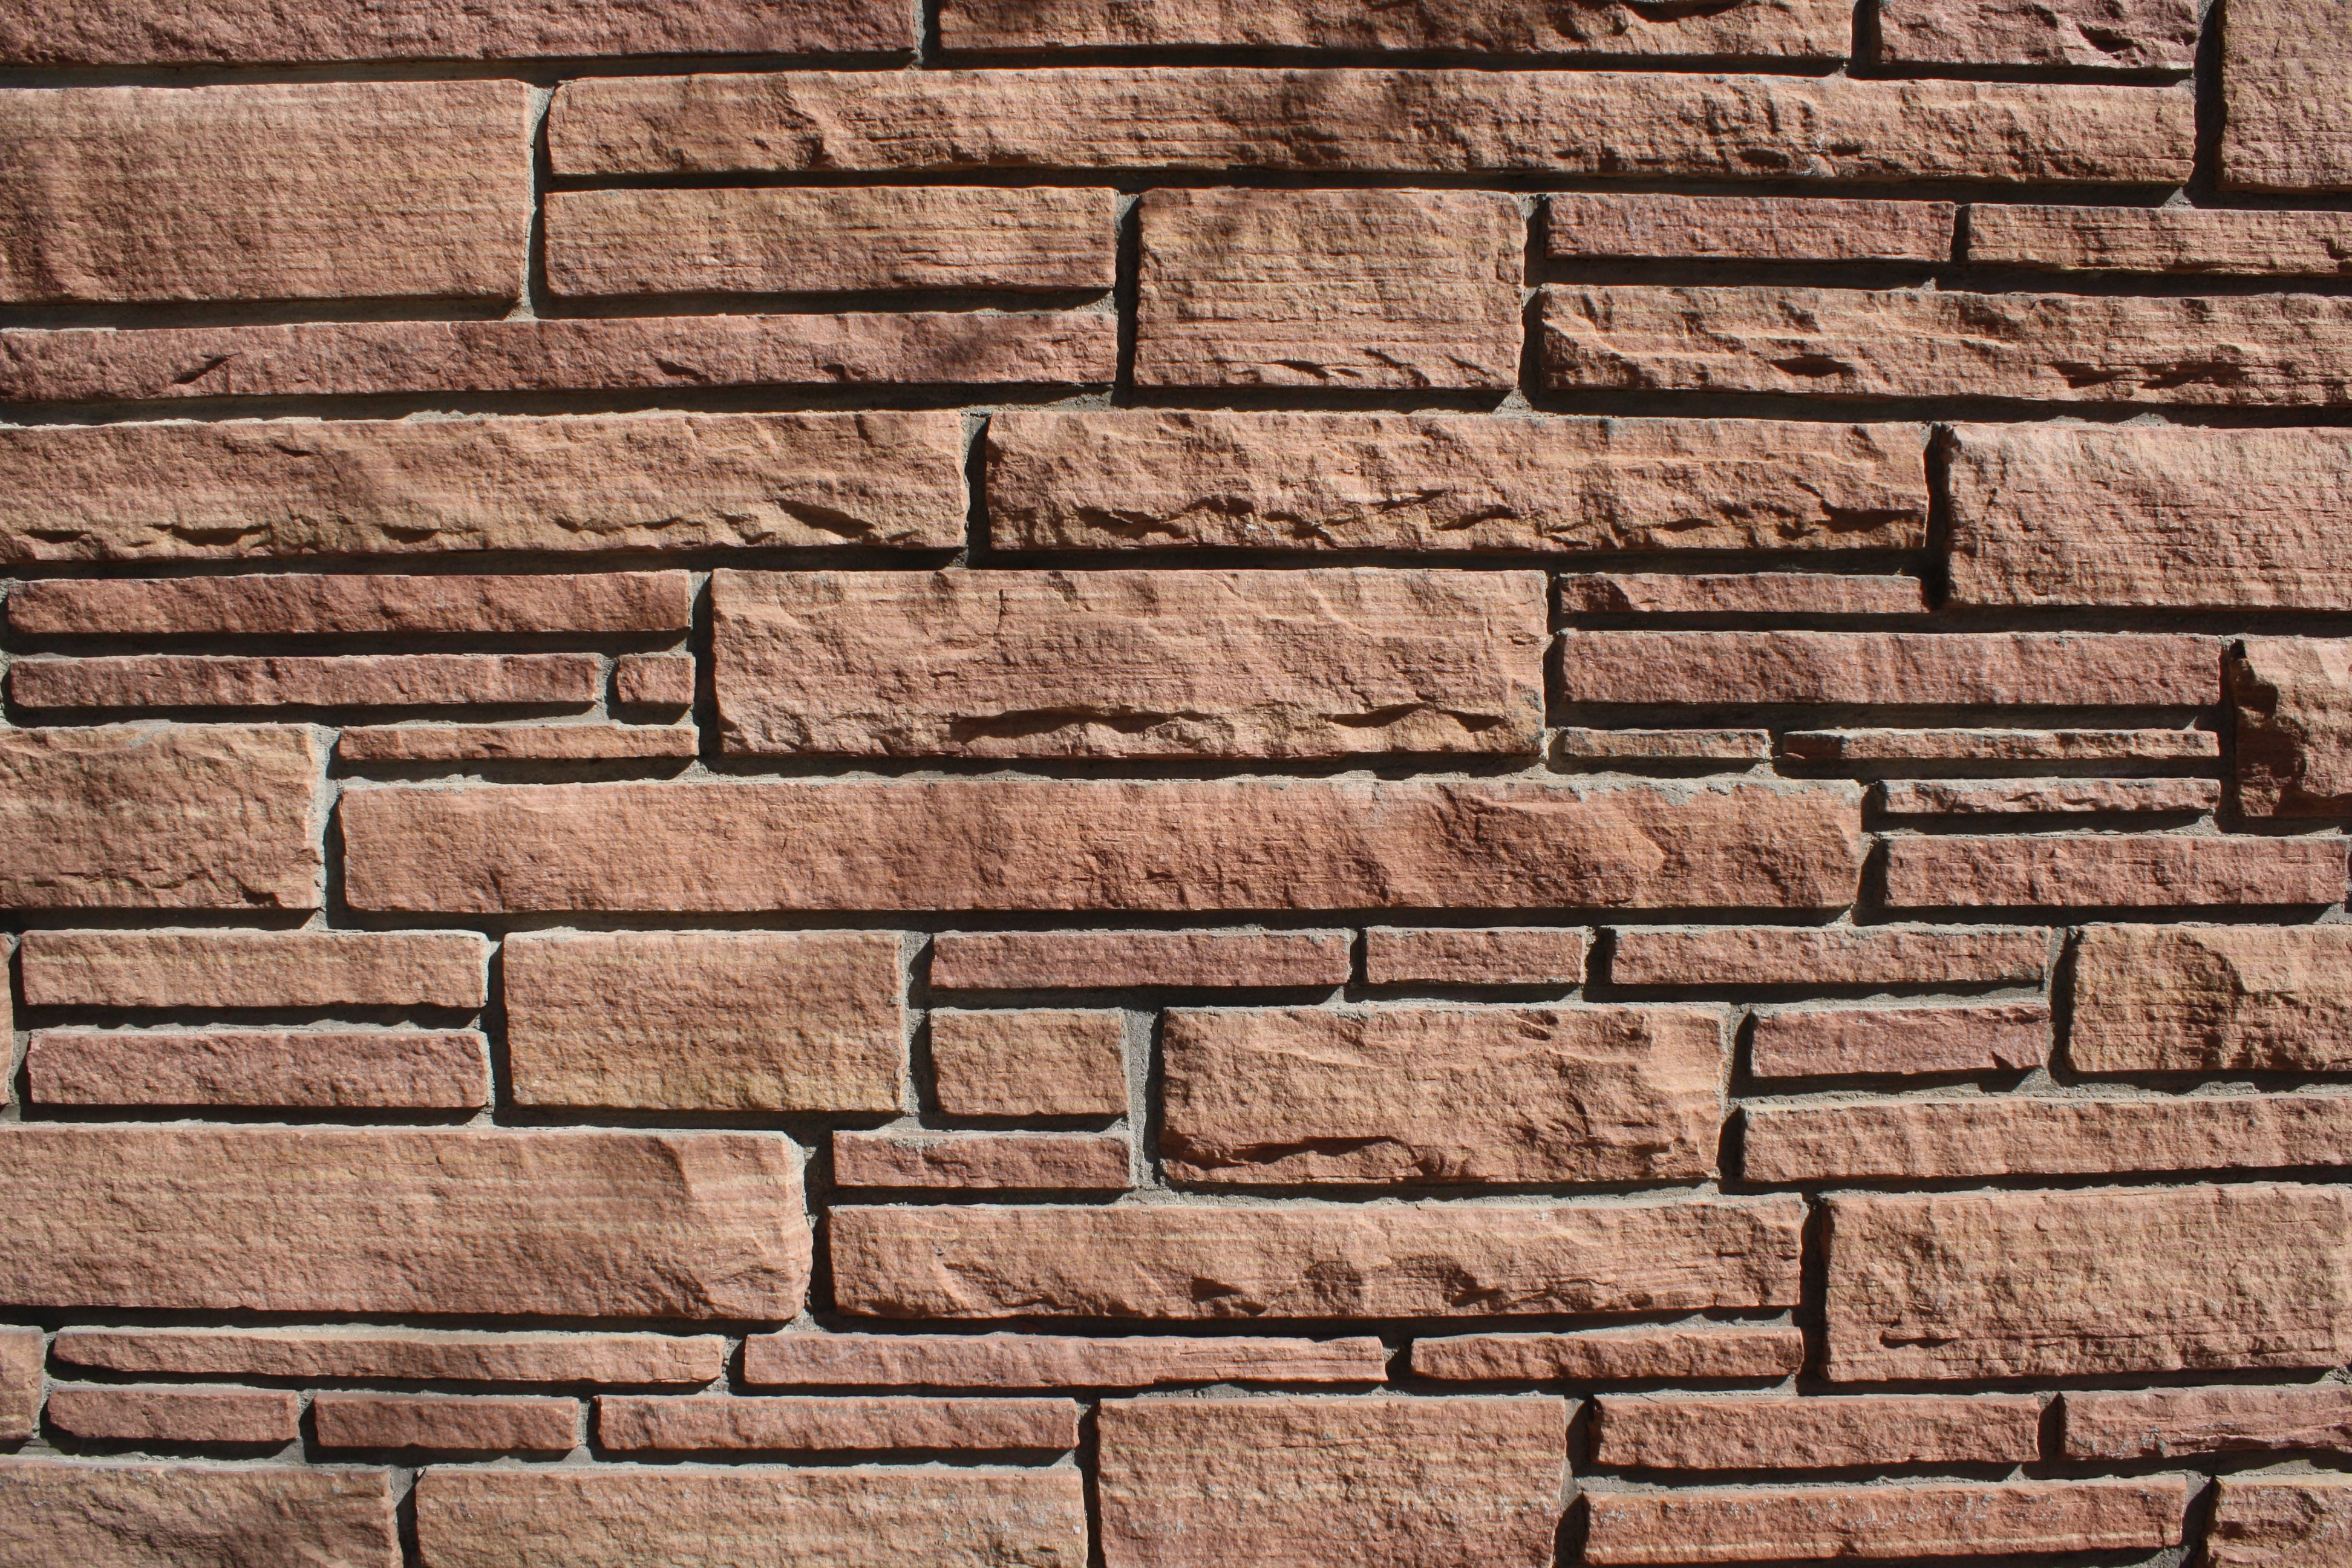 Red sandstone brick wall texture picture free photograph photos public domain - Texturize walls ...